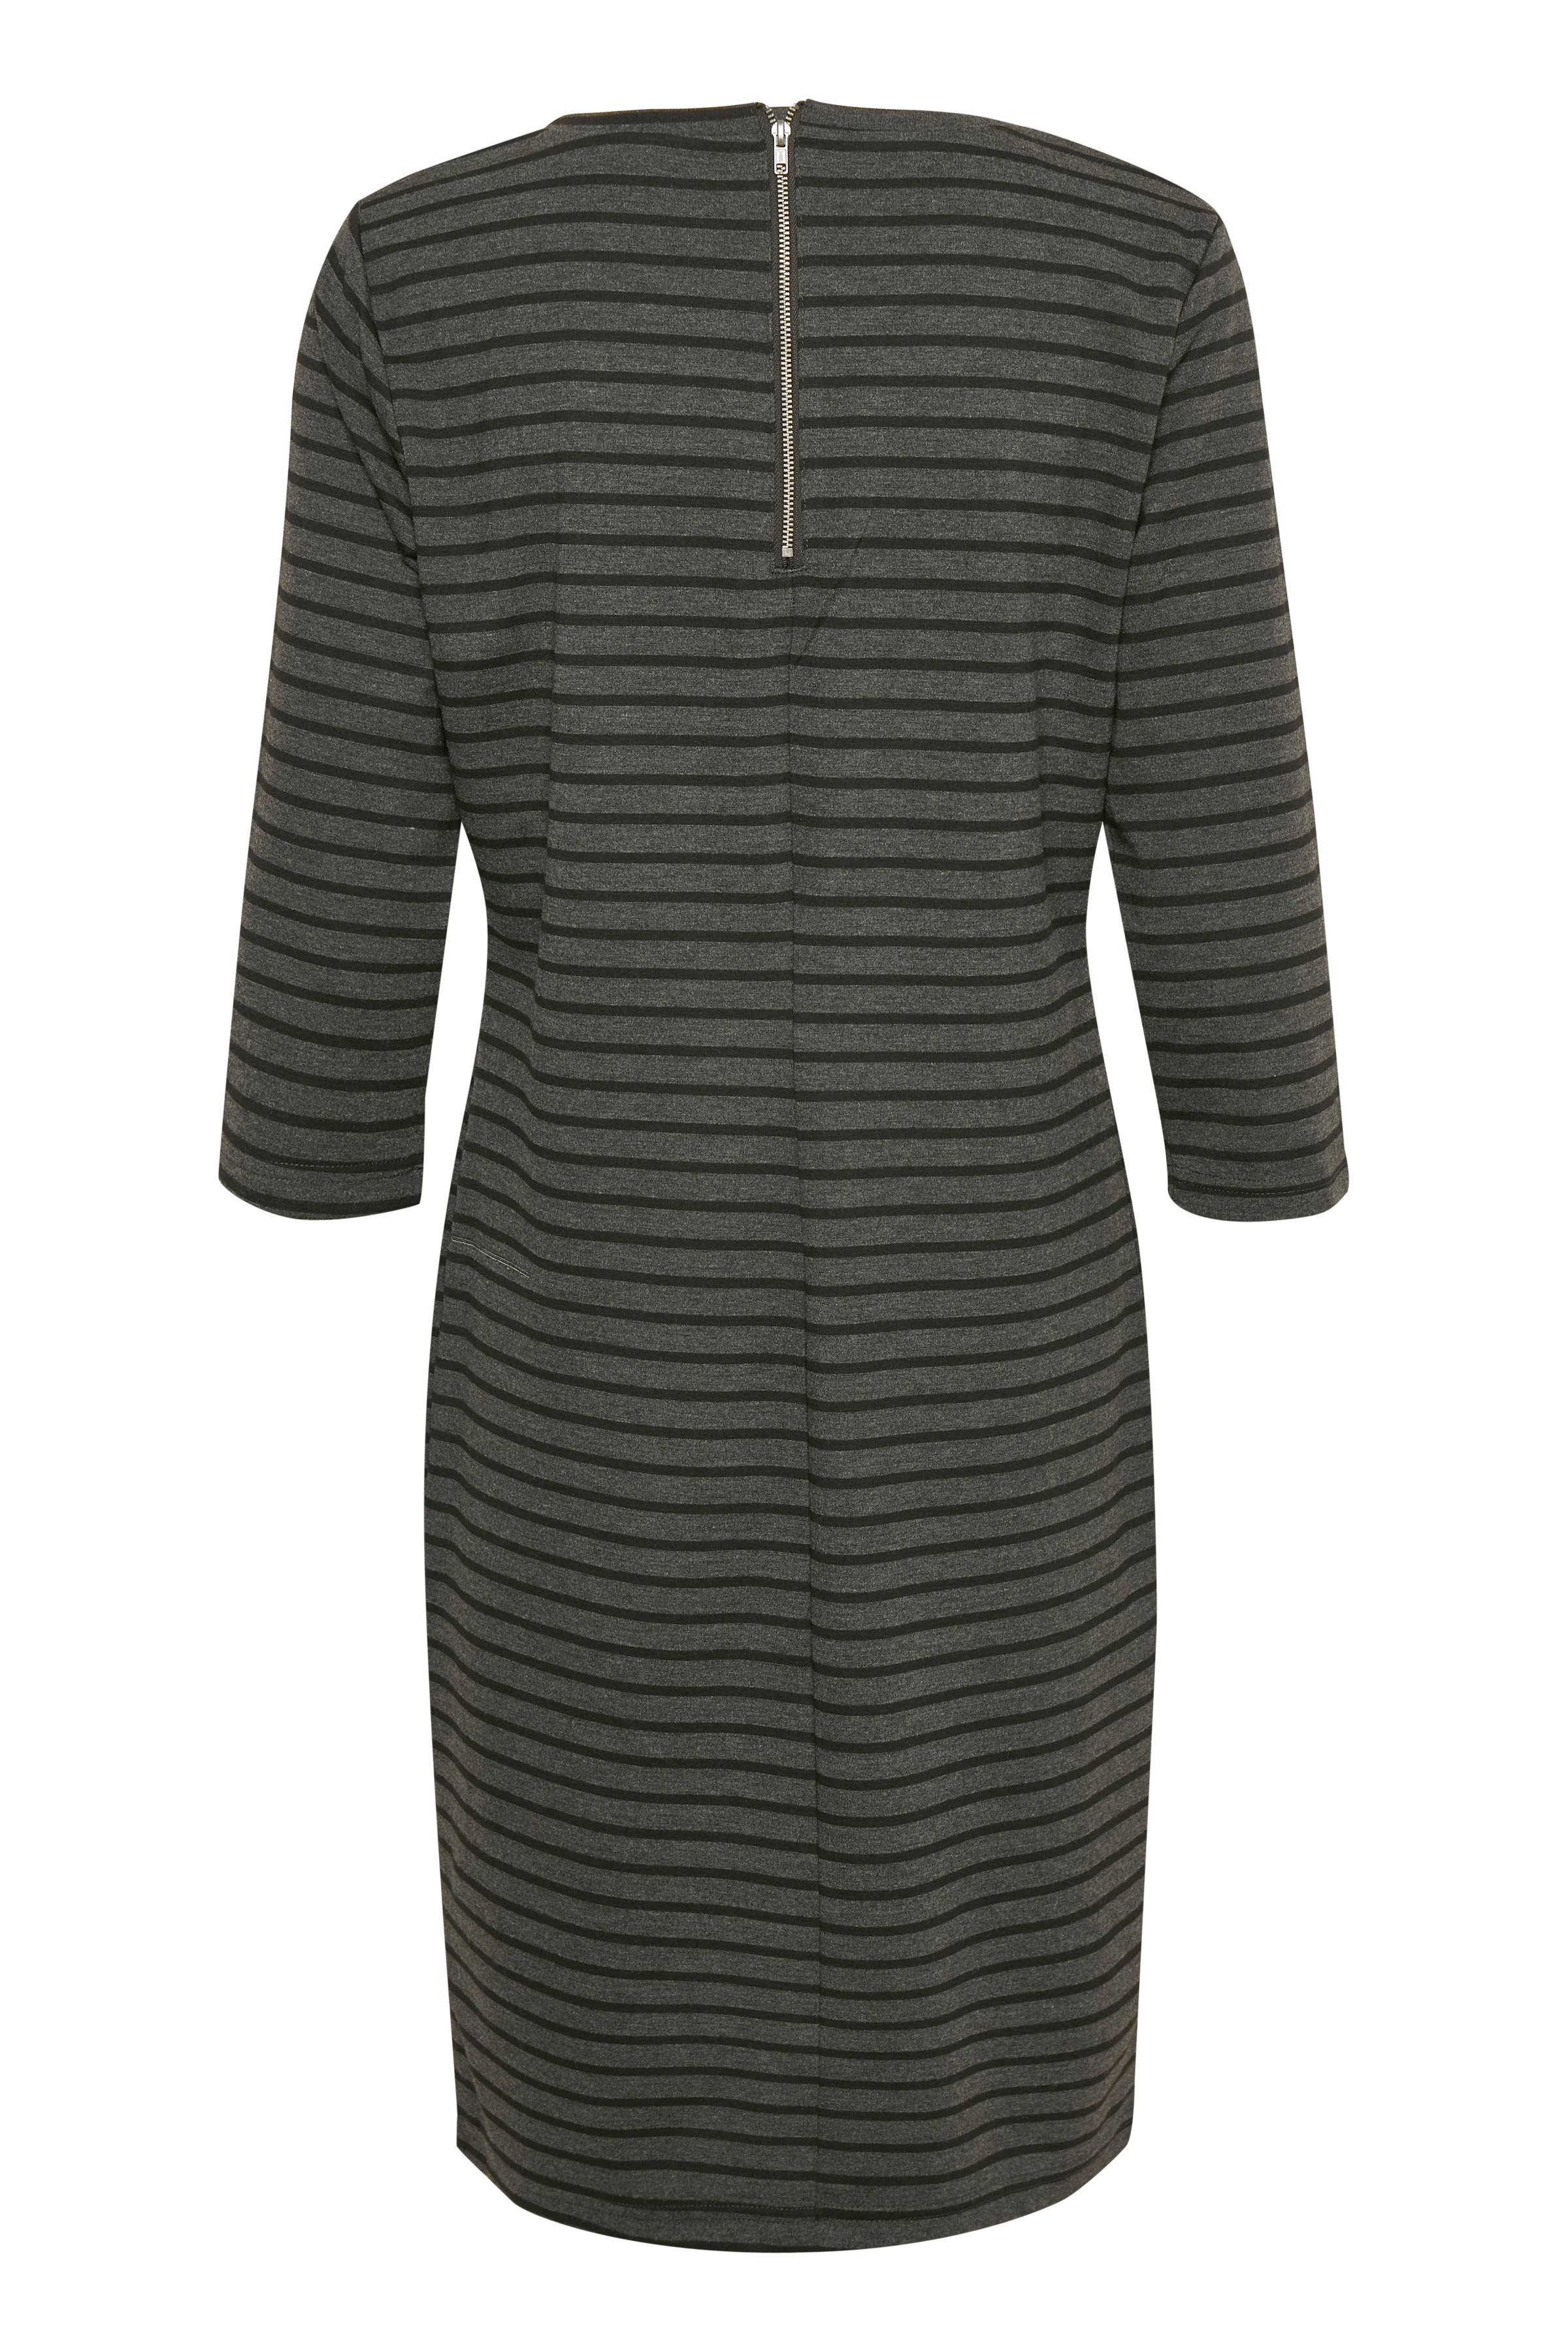 Dark grey mel. combi Jerseykjole fra b.young – Køb Dark grey mel. combi Jerseykjole fra str. XS-XXL her